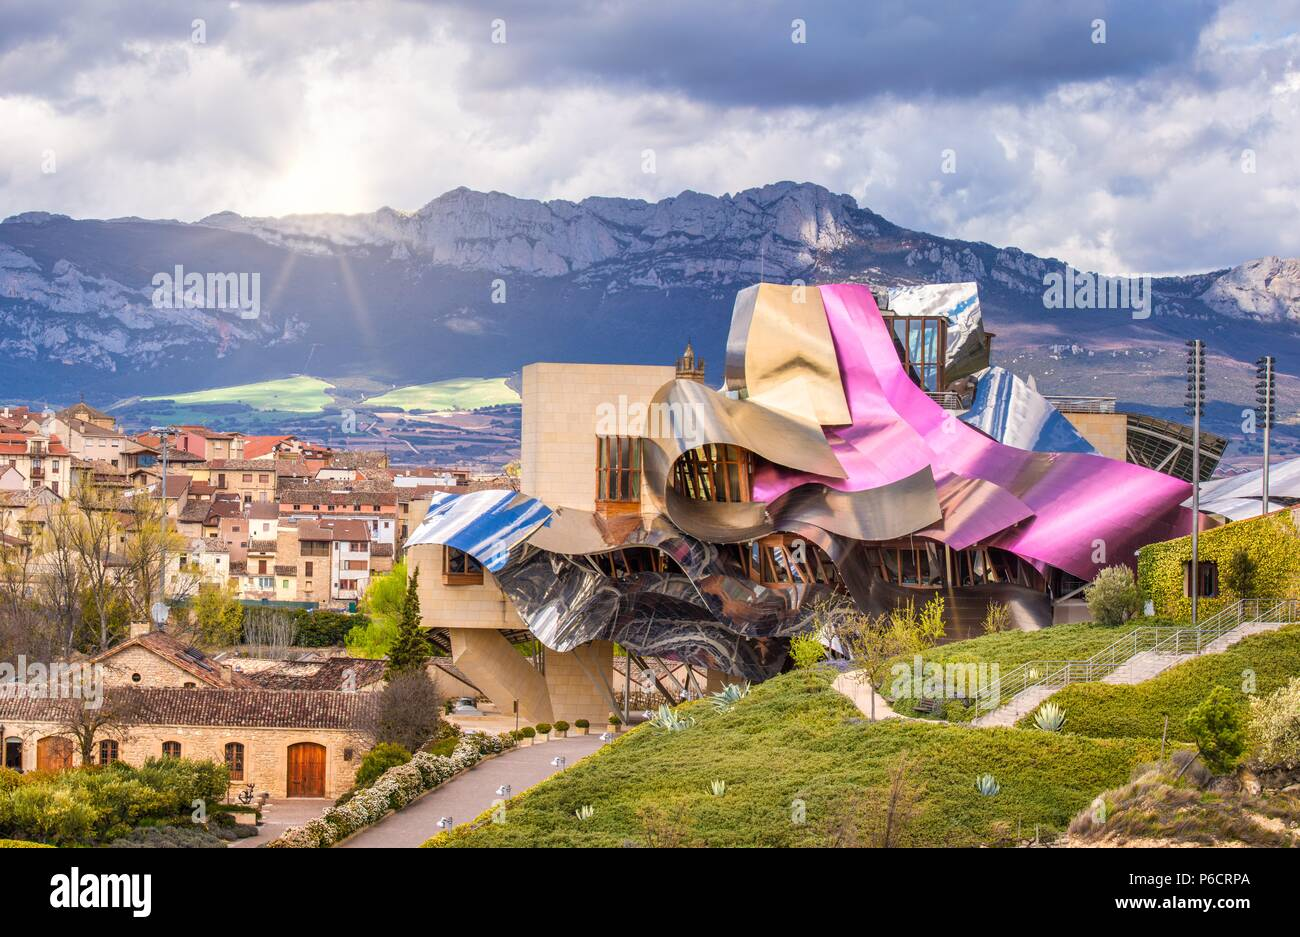 Architecture Frank Gehry Marques De Riscal Hotel Stock Photos